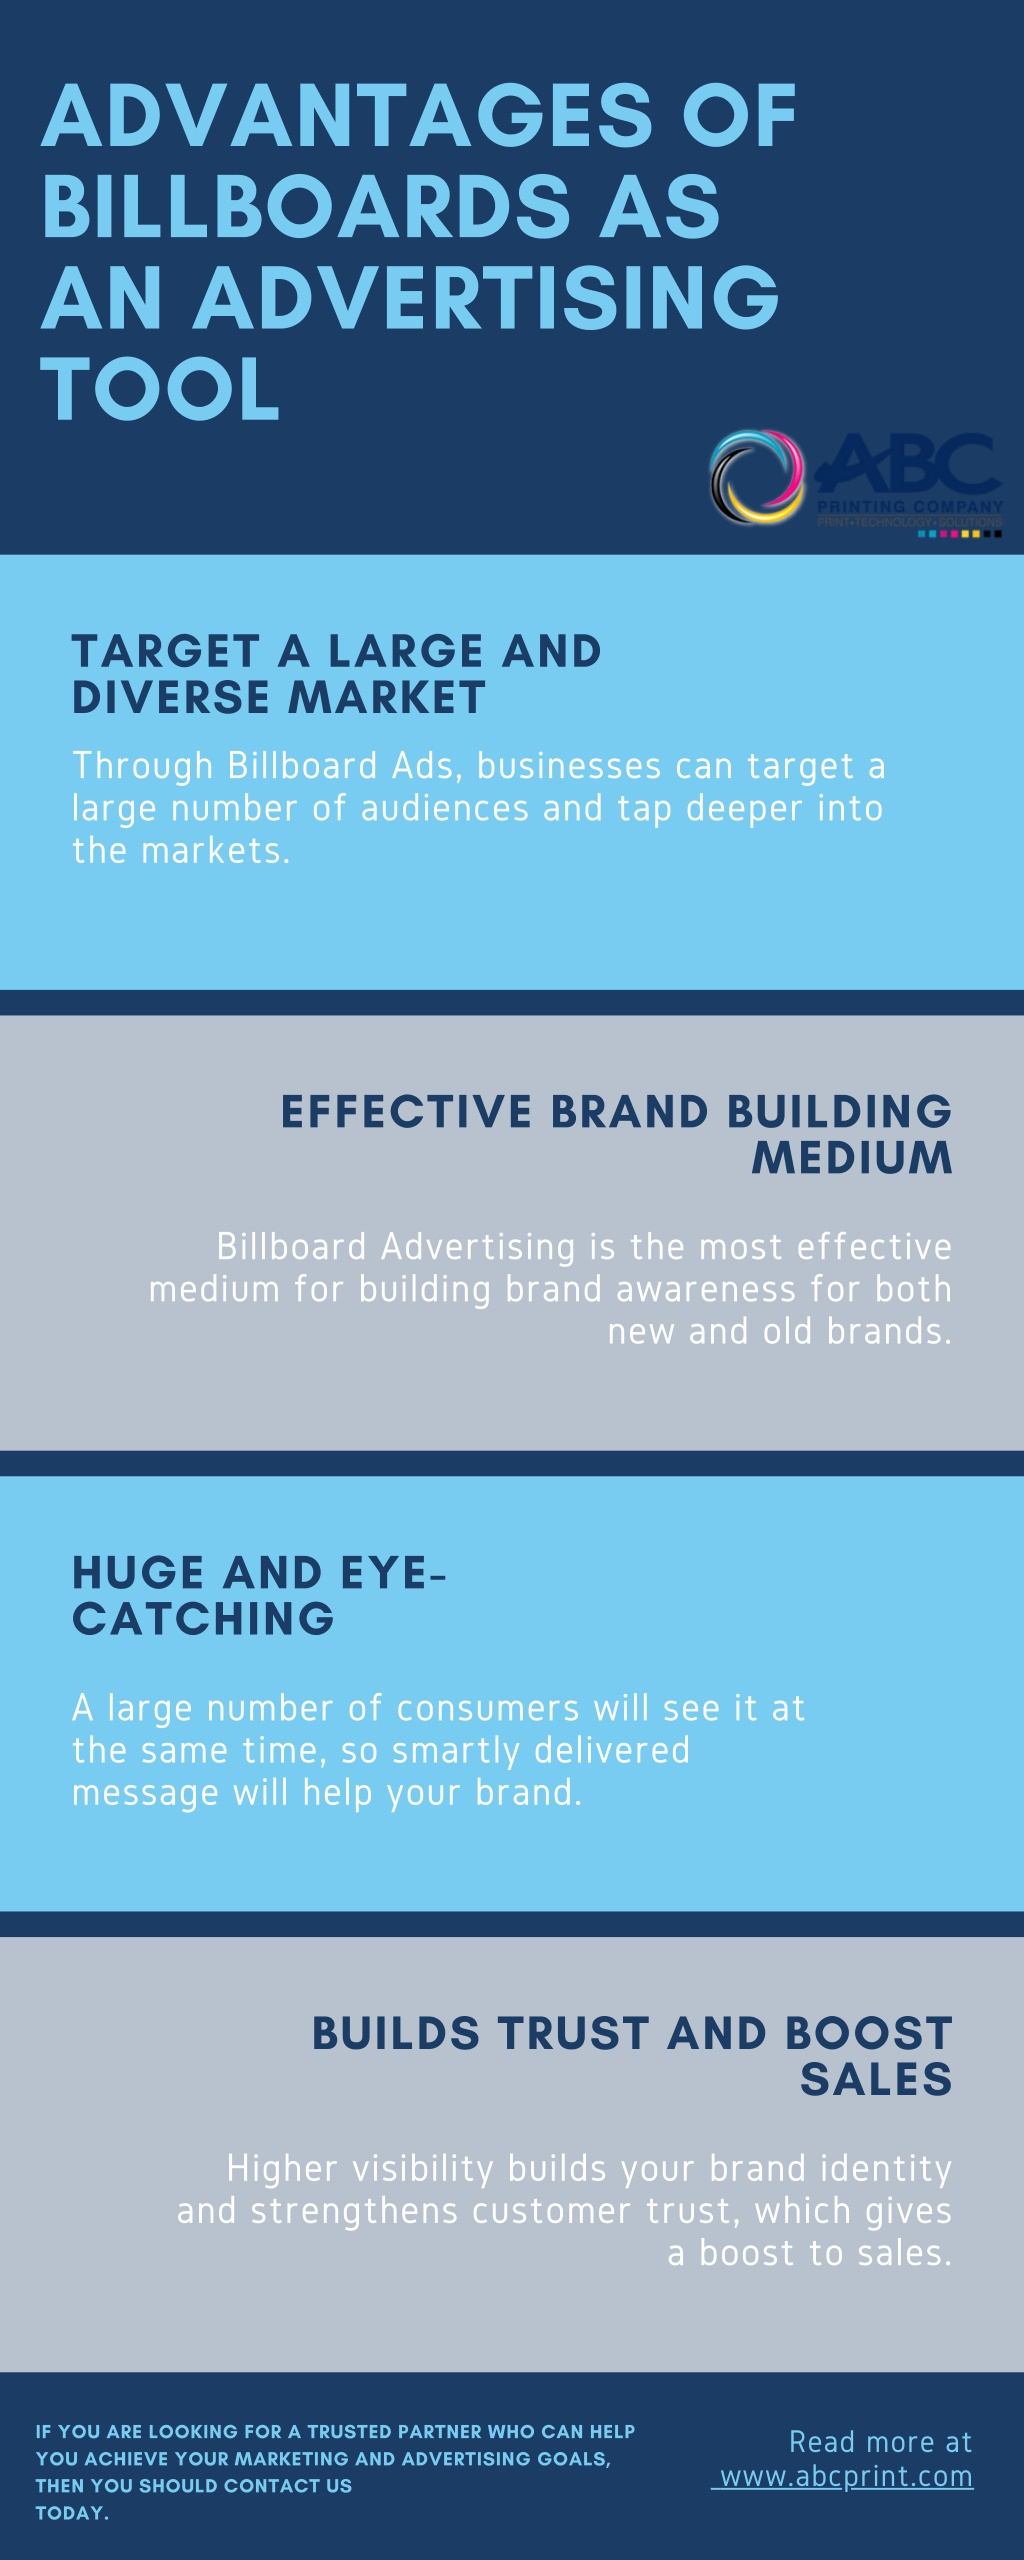 Advantages of Billboards as an Advertising Tool